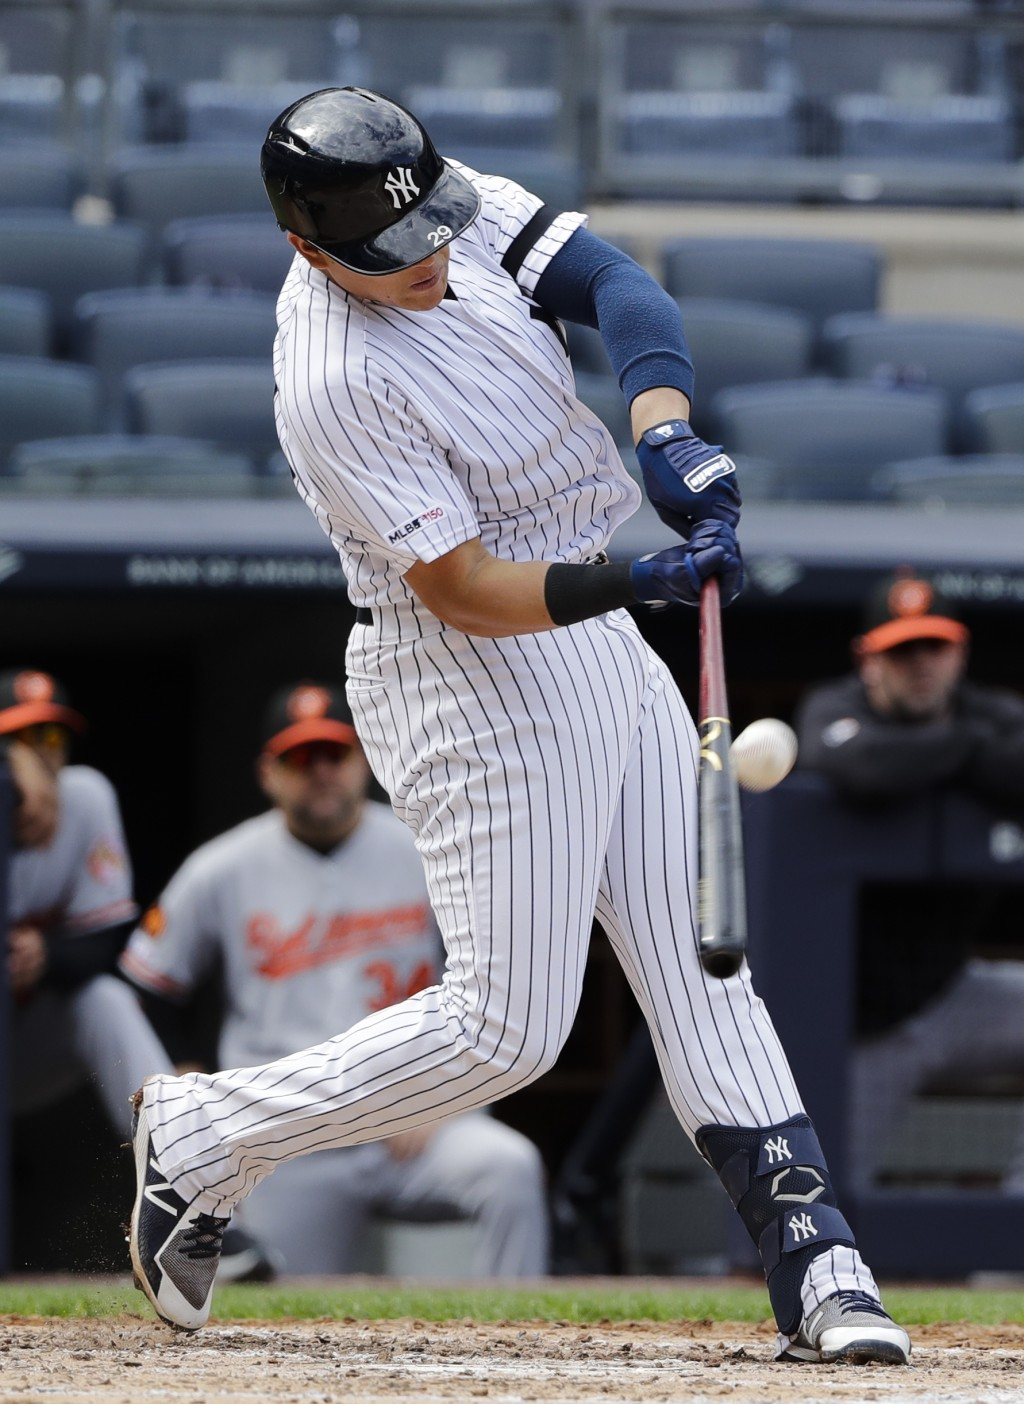 New York Yankees' Gio Urshela connects for a base hit during the fourth inning of a baseball game against the Baltimore Orioles Wednesday, May 15, 201